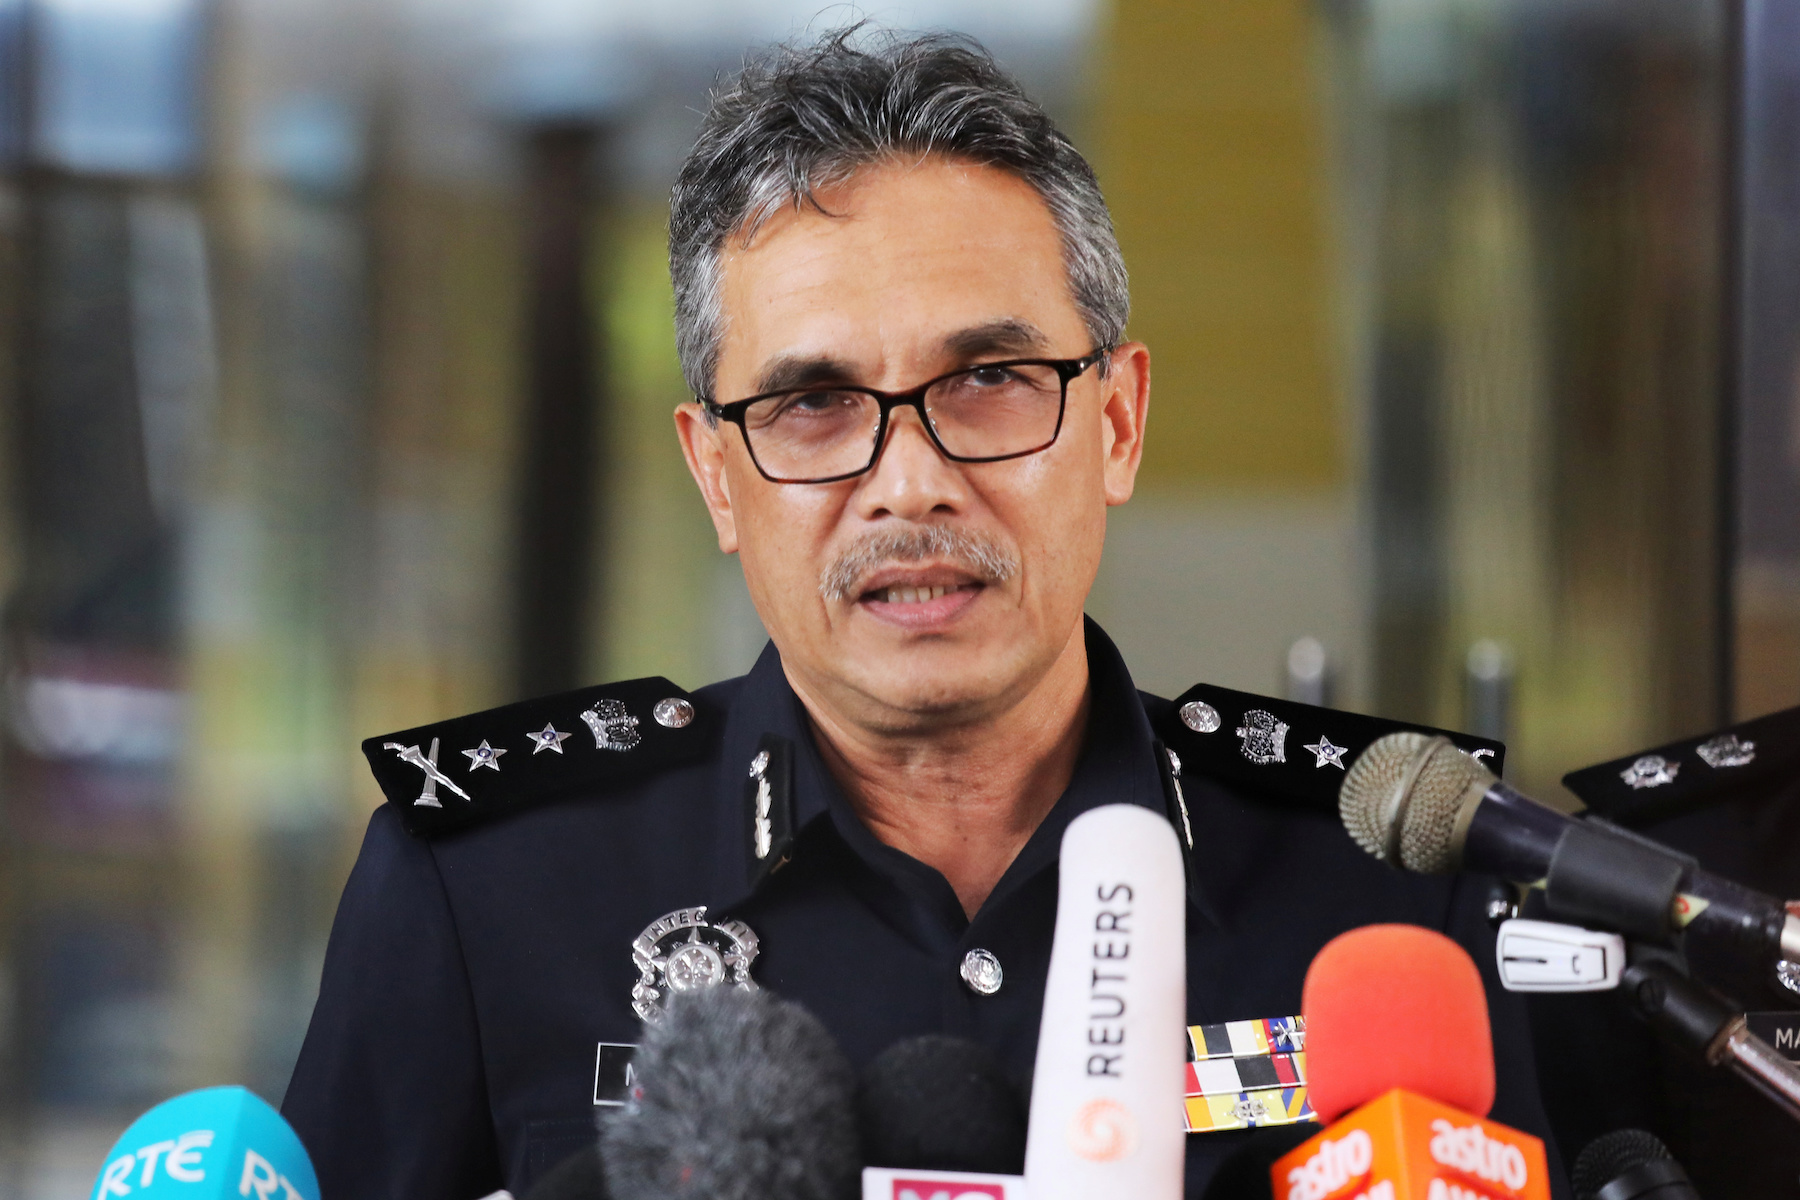 Negeri Sembilan State Police Chief Mohamad Mat Yusop speaks during a news conference at Negeri Sembilan Police Headquaters in Seremban